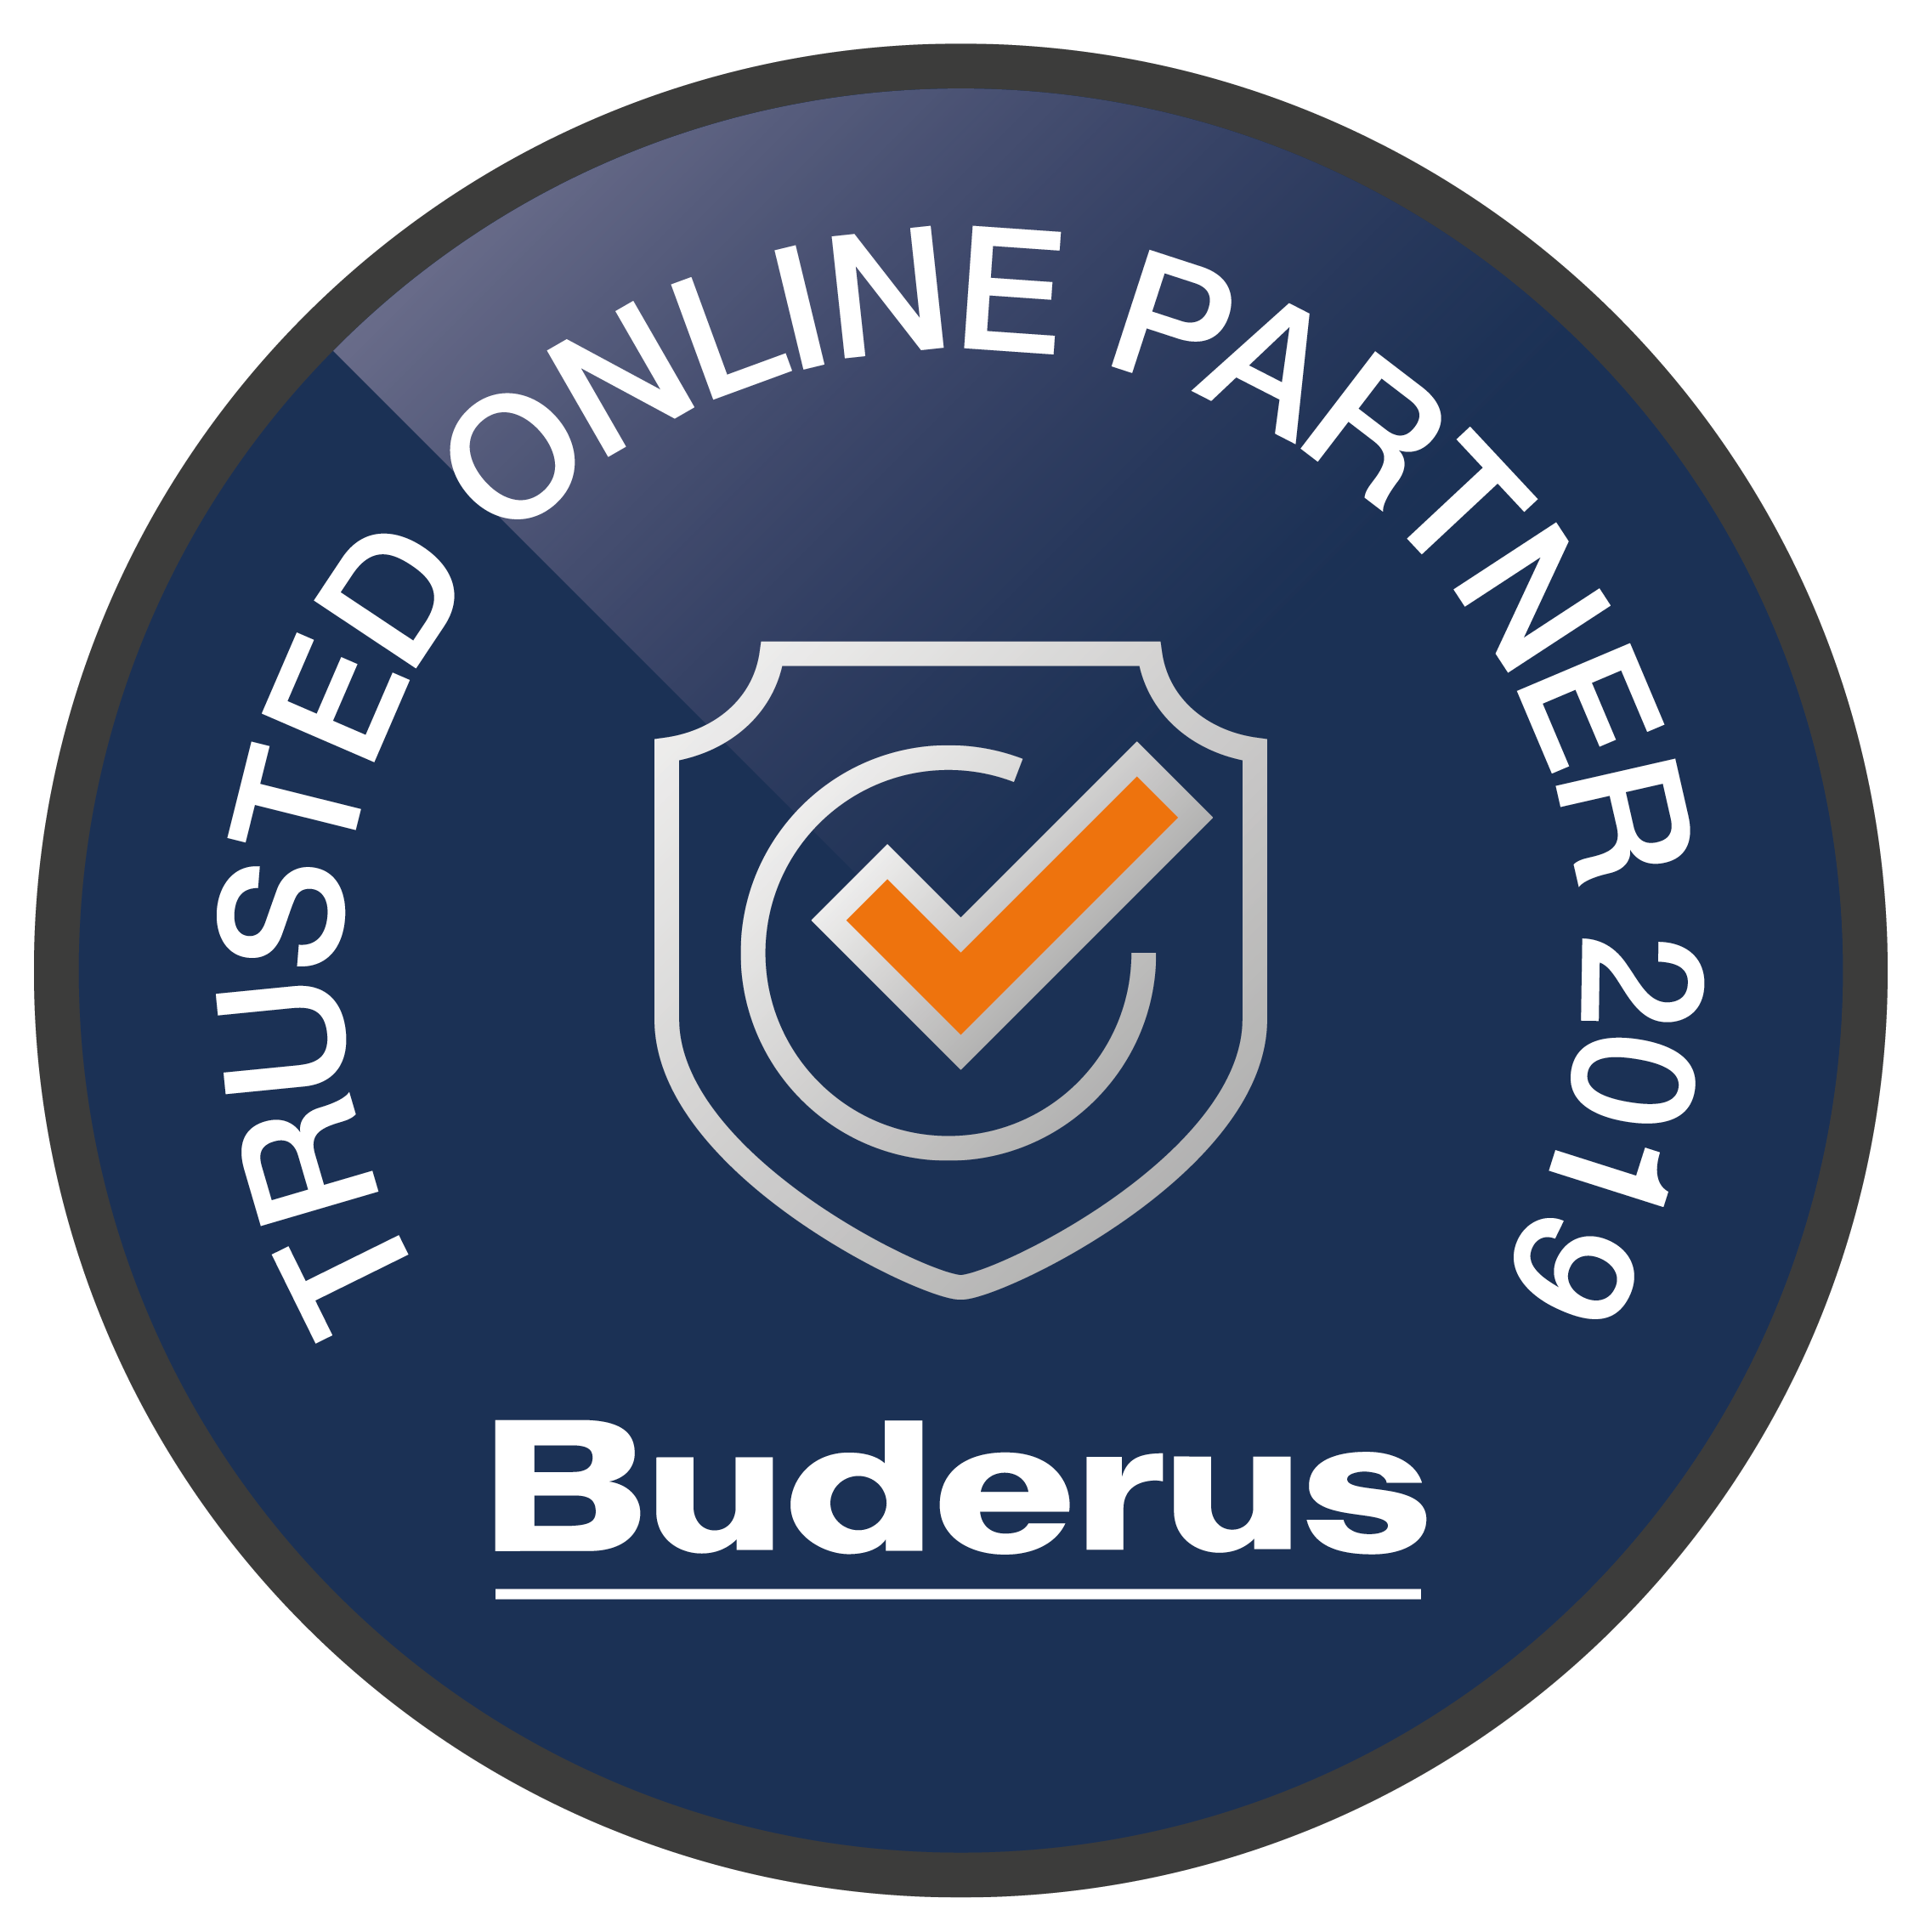 Trusted Online Partner